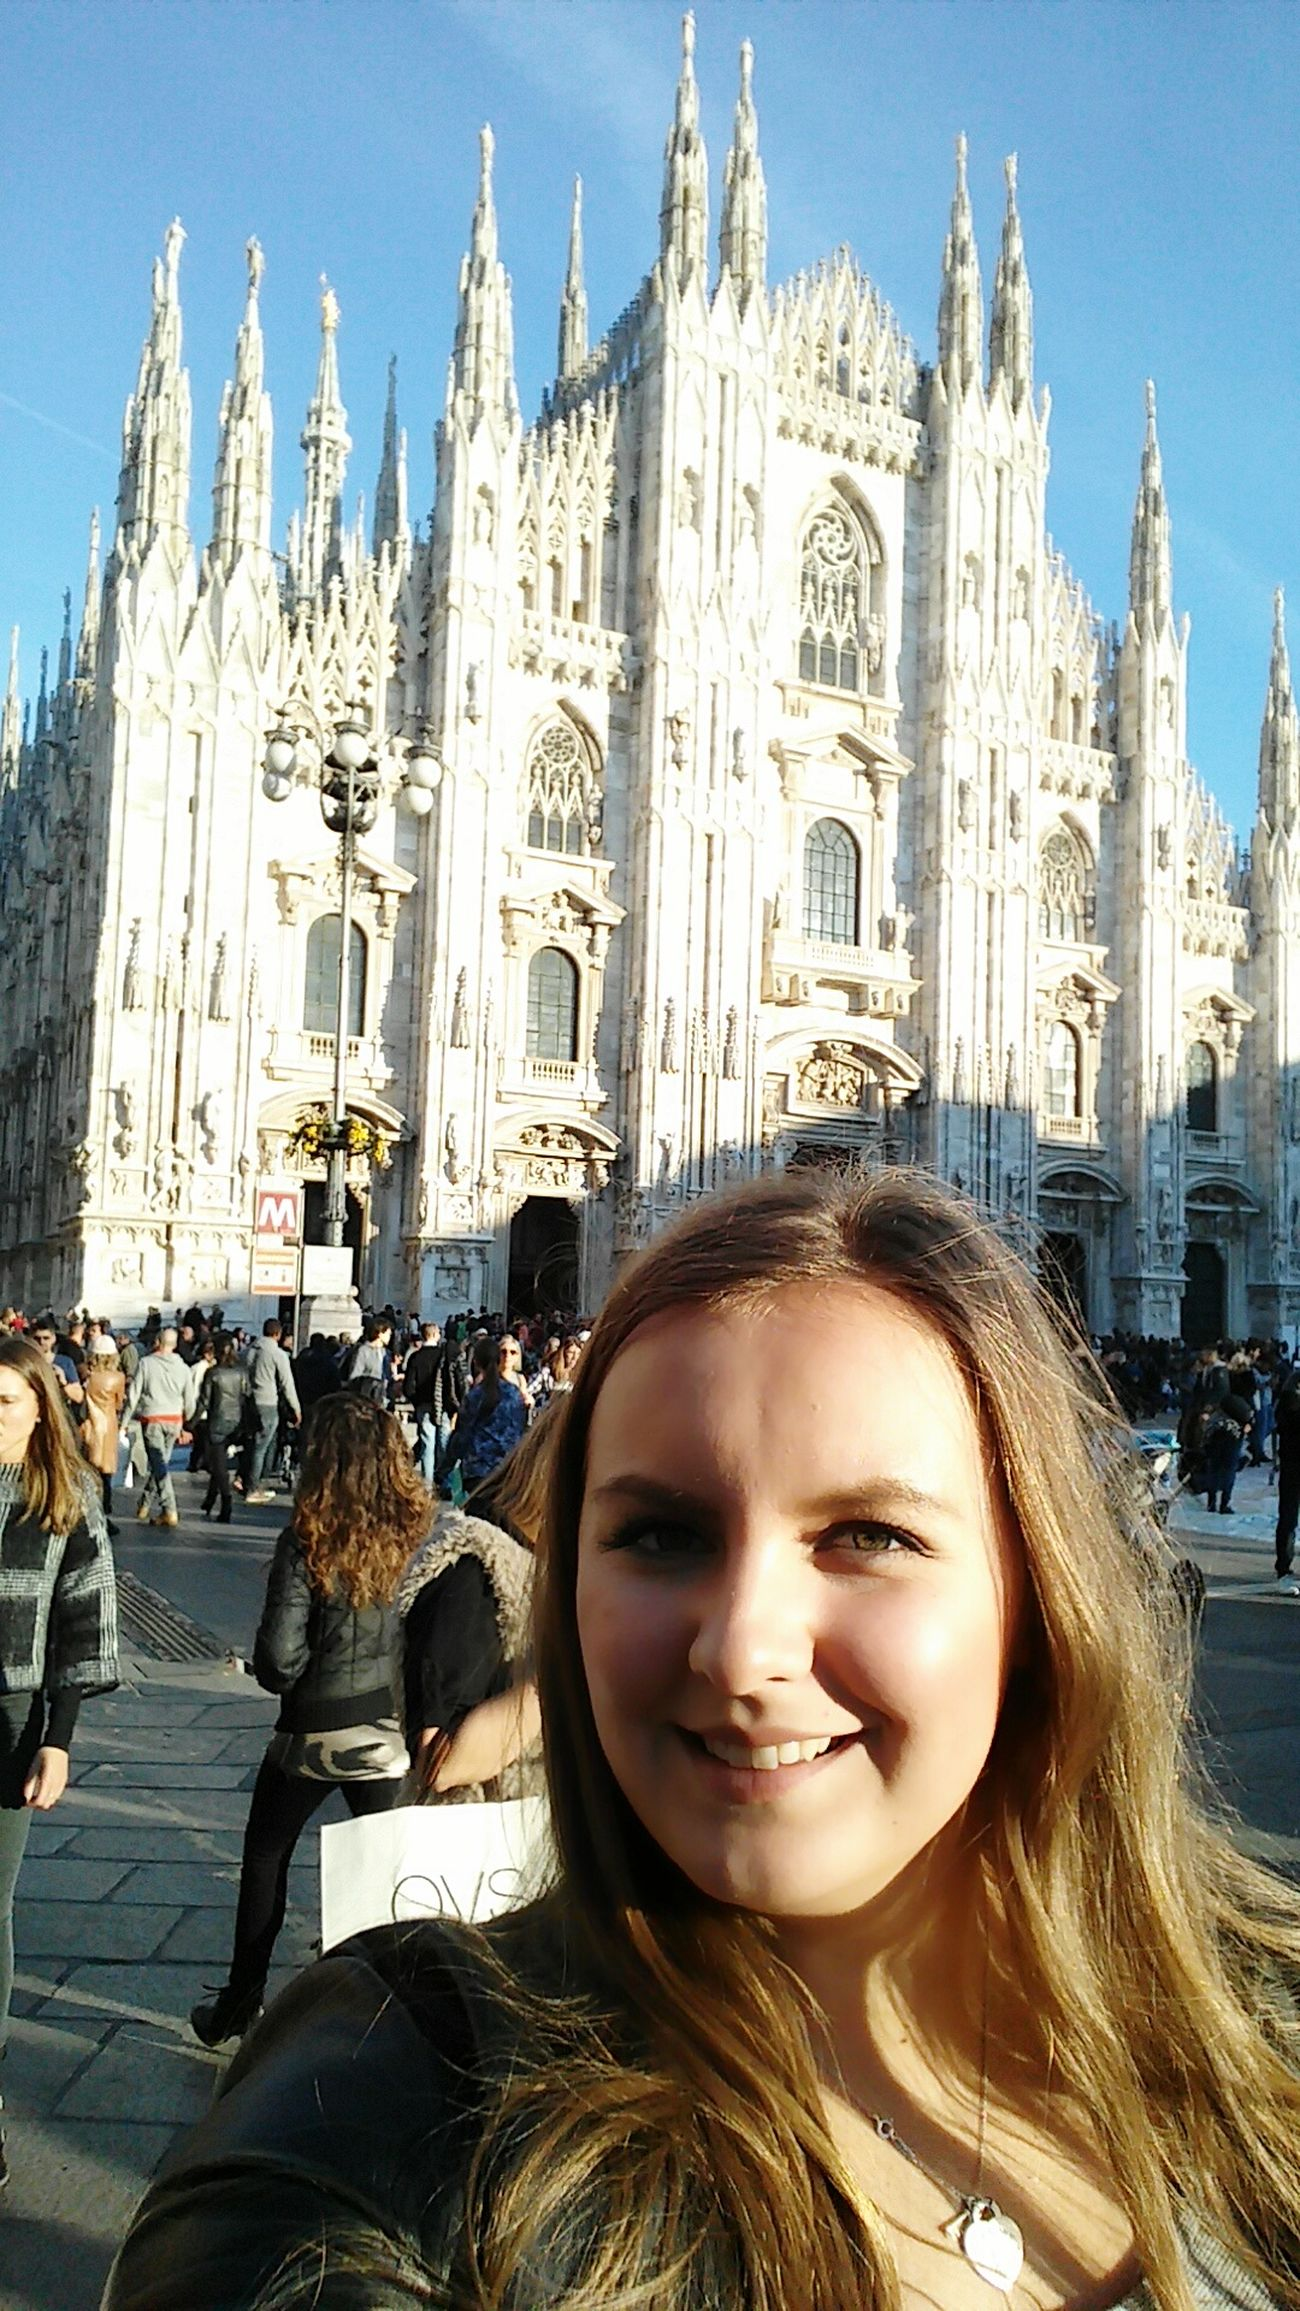 Milan Milano Italia Italy Travel Euronlyyoungonce Mailand Milanoduomo Wanderlust Duomo MilaNoFilter Traveling Europe Cathedral Europeanunion